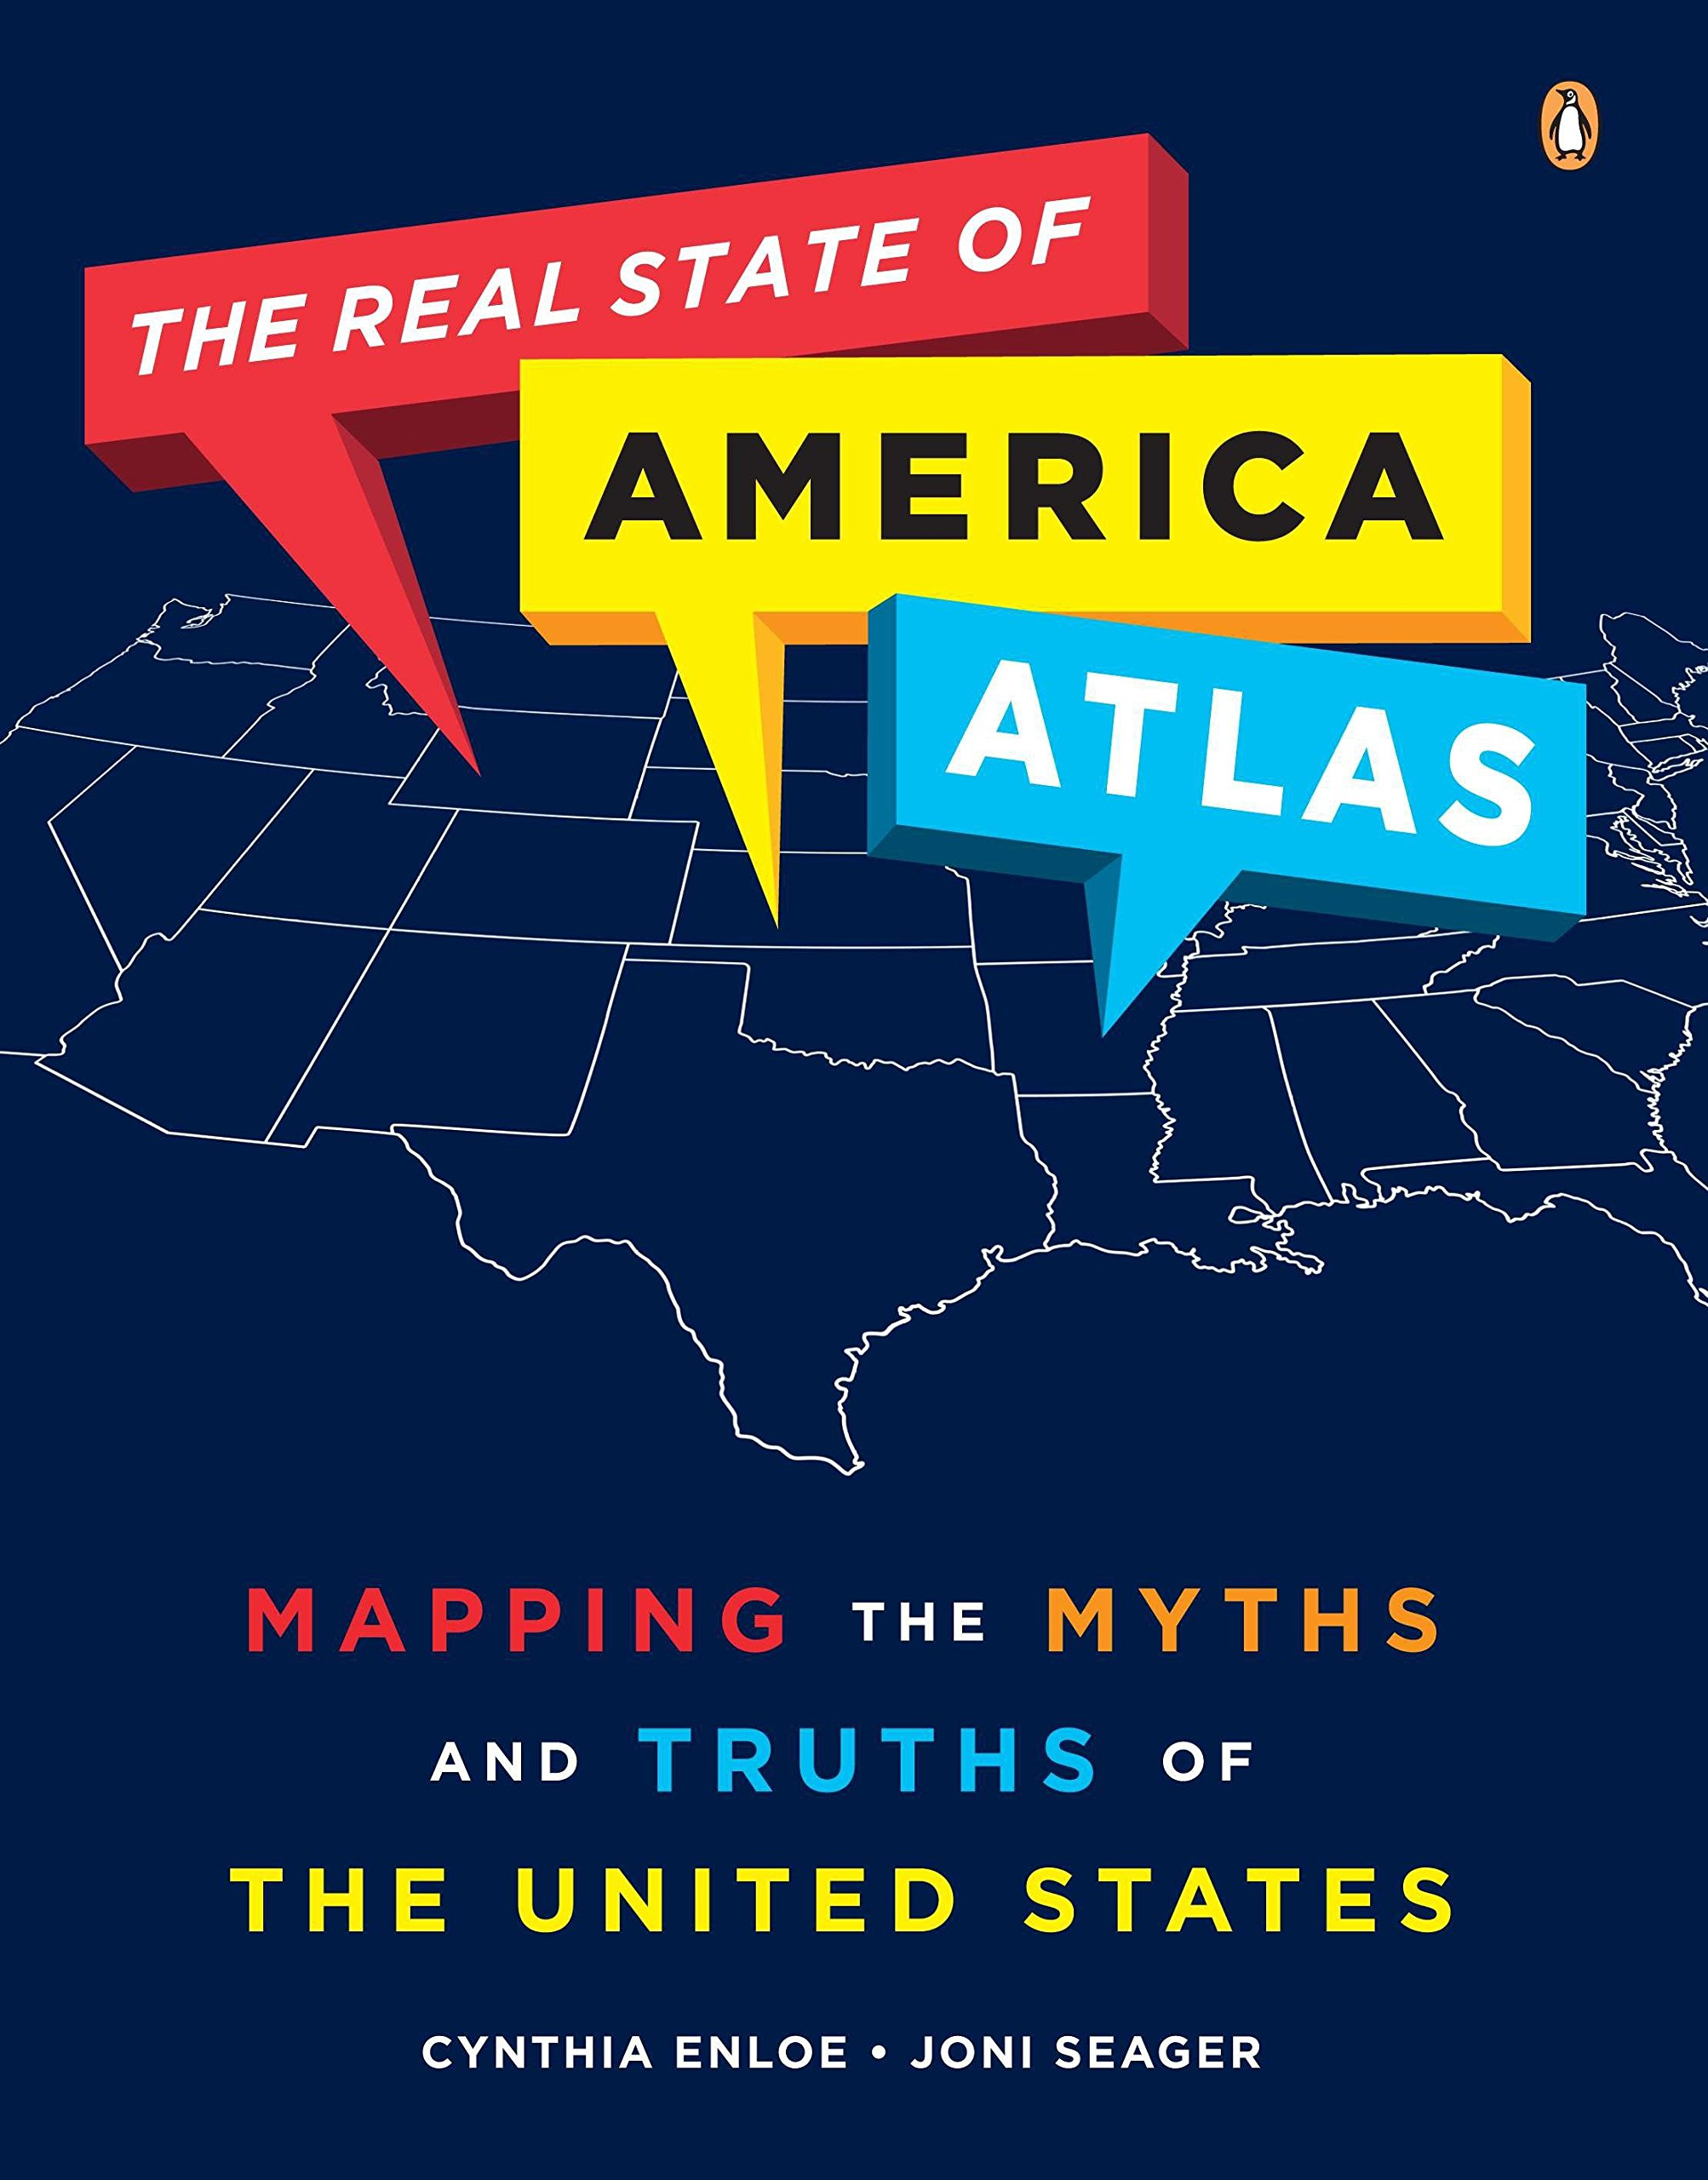 Download The Real State of America Atlas: Mapping the Myths and Truths of the United States pdf